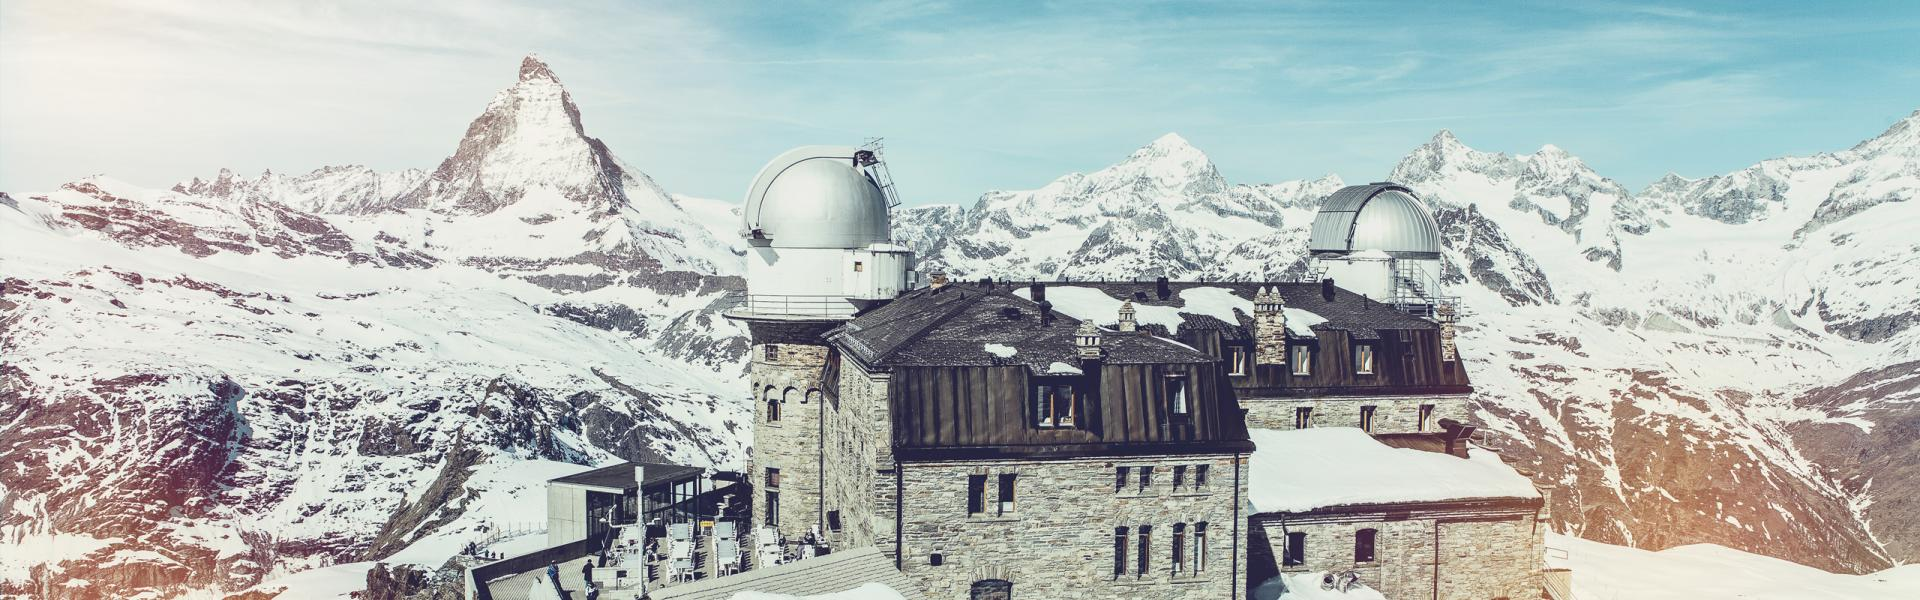 Gornergrat, Panorama con Cervino, Zermatt, Vallese